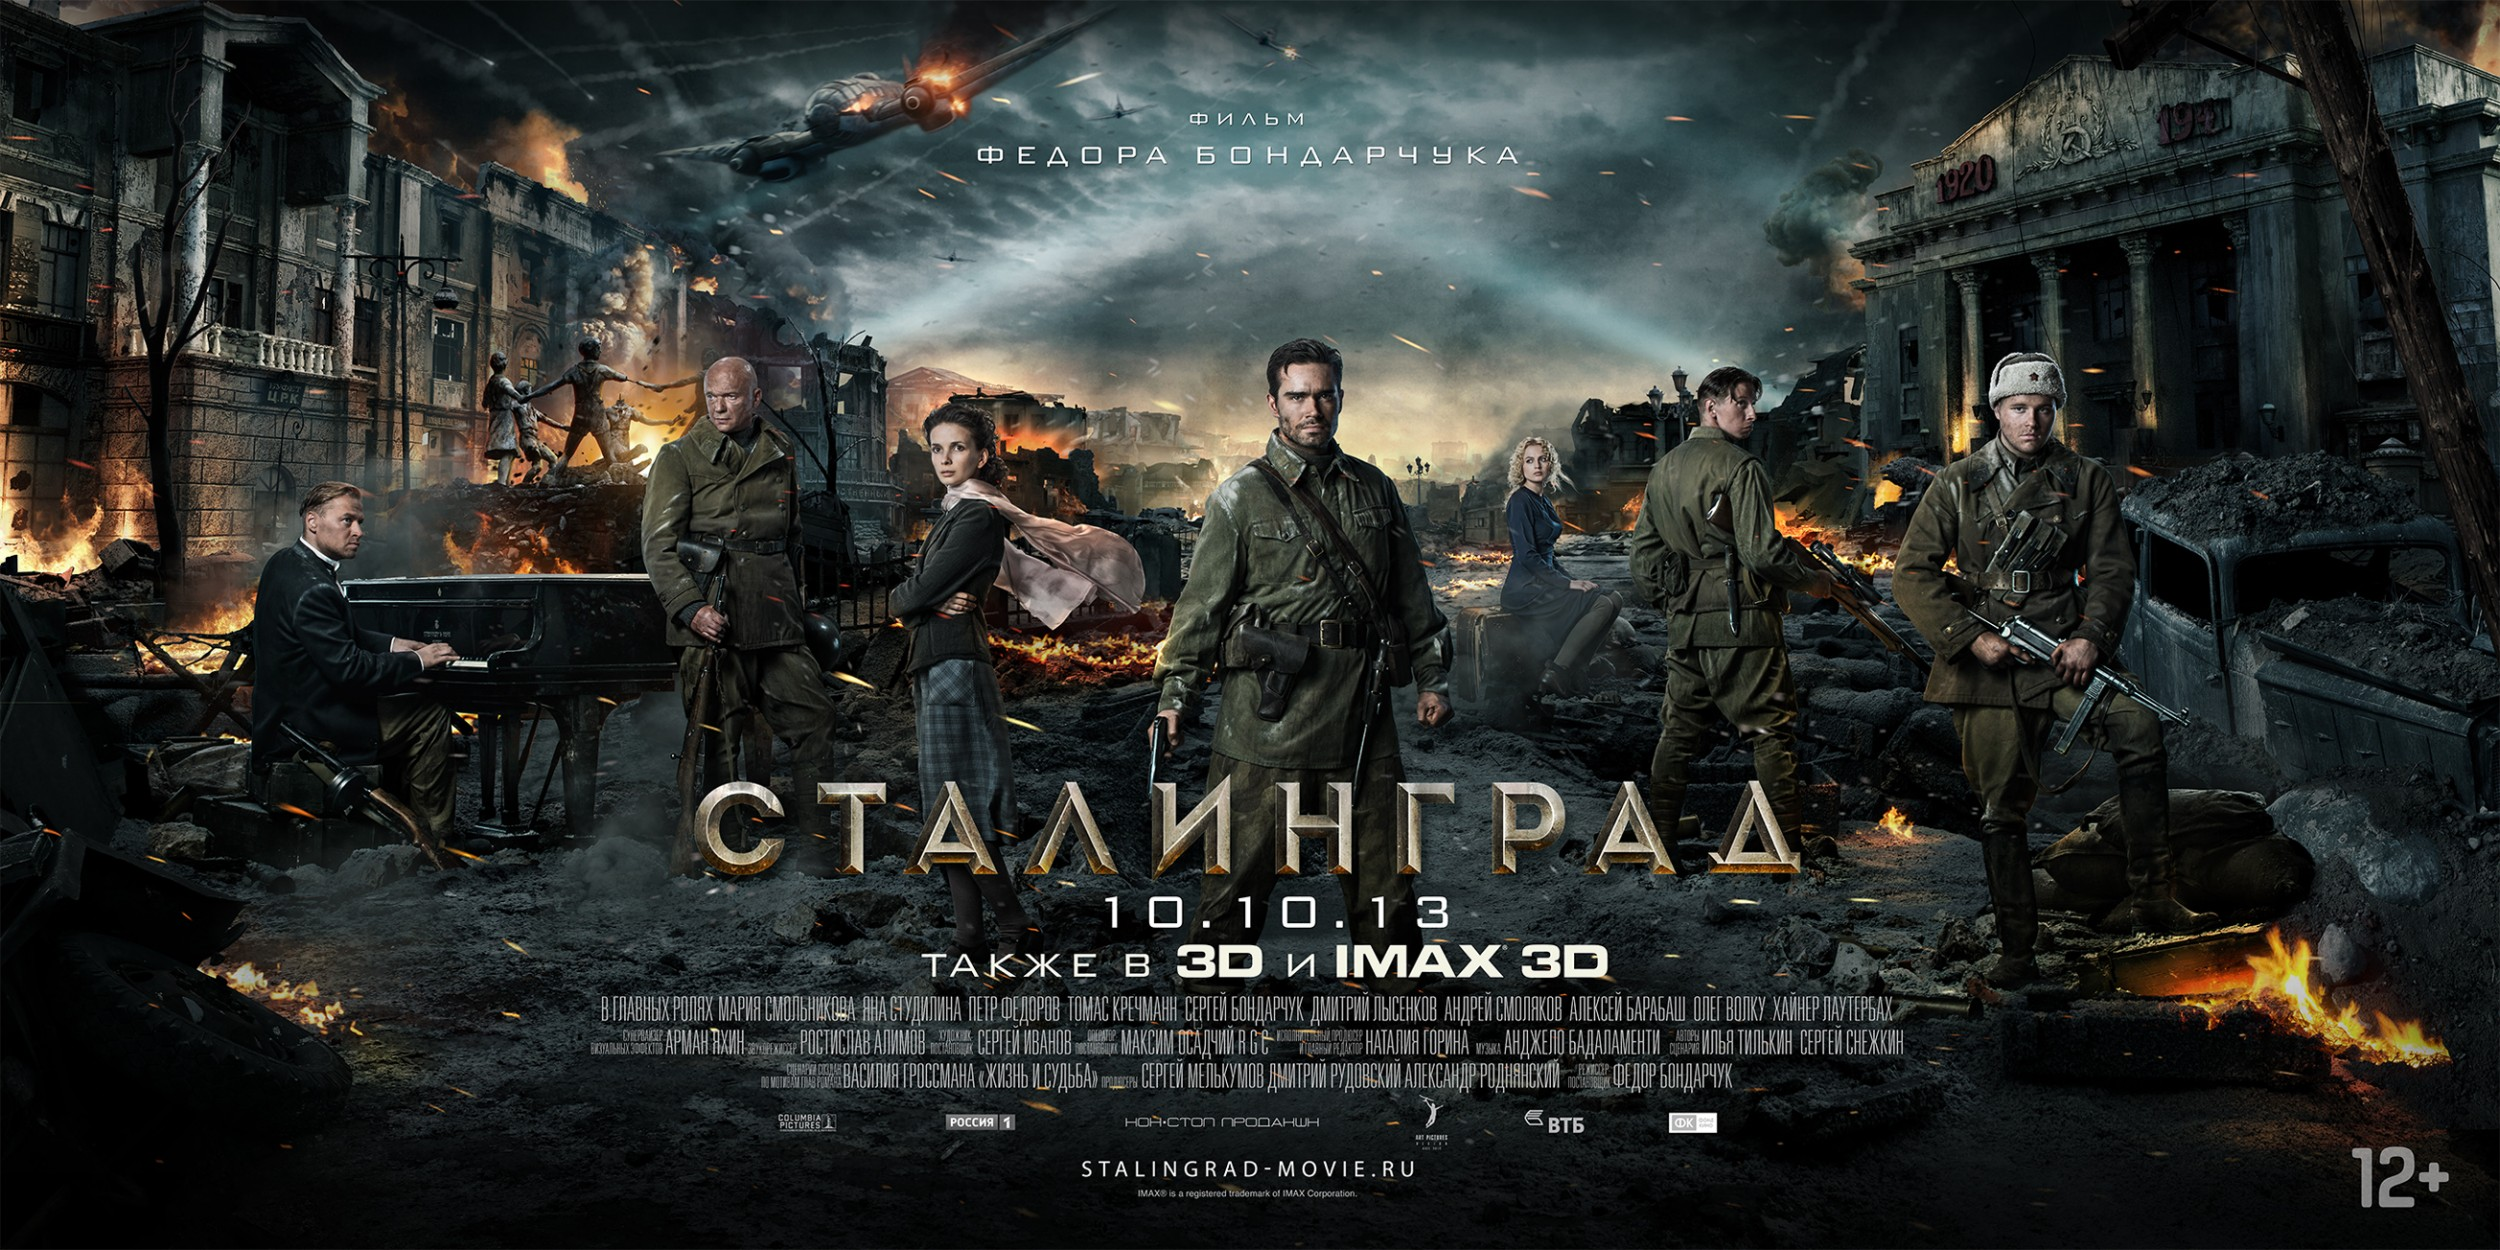 The film is a Russian director is considered one of the favorites of the Cannes Film Festival 15.05.2014 27